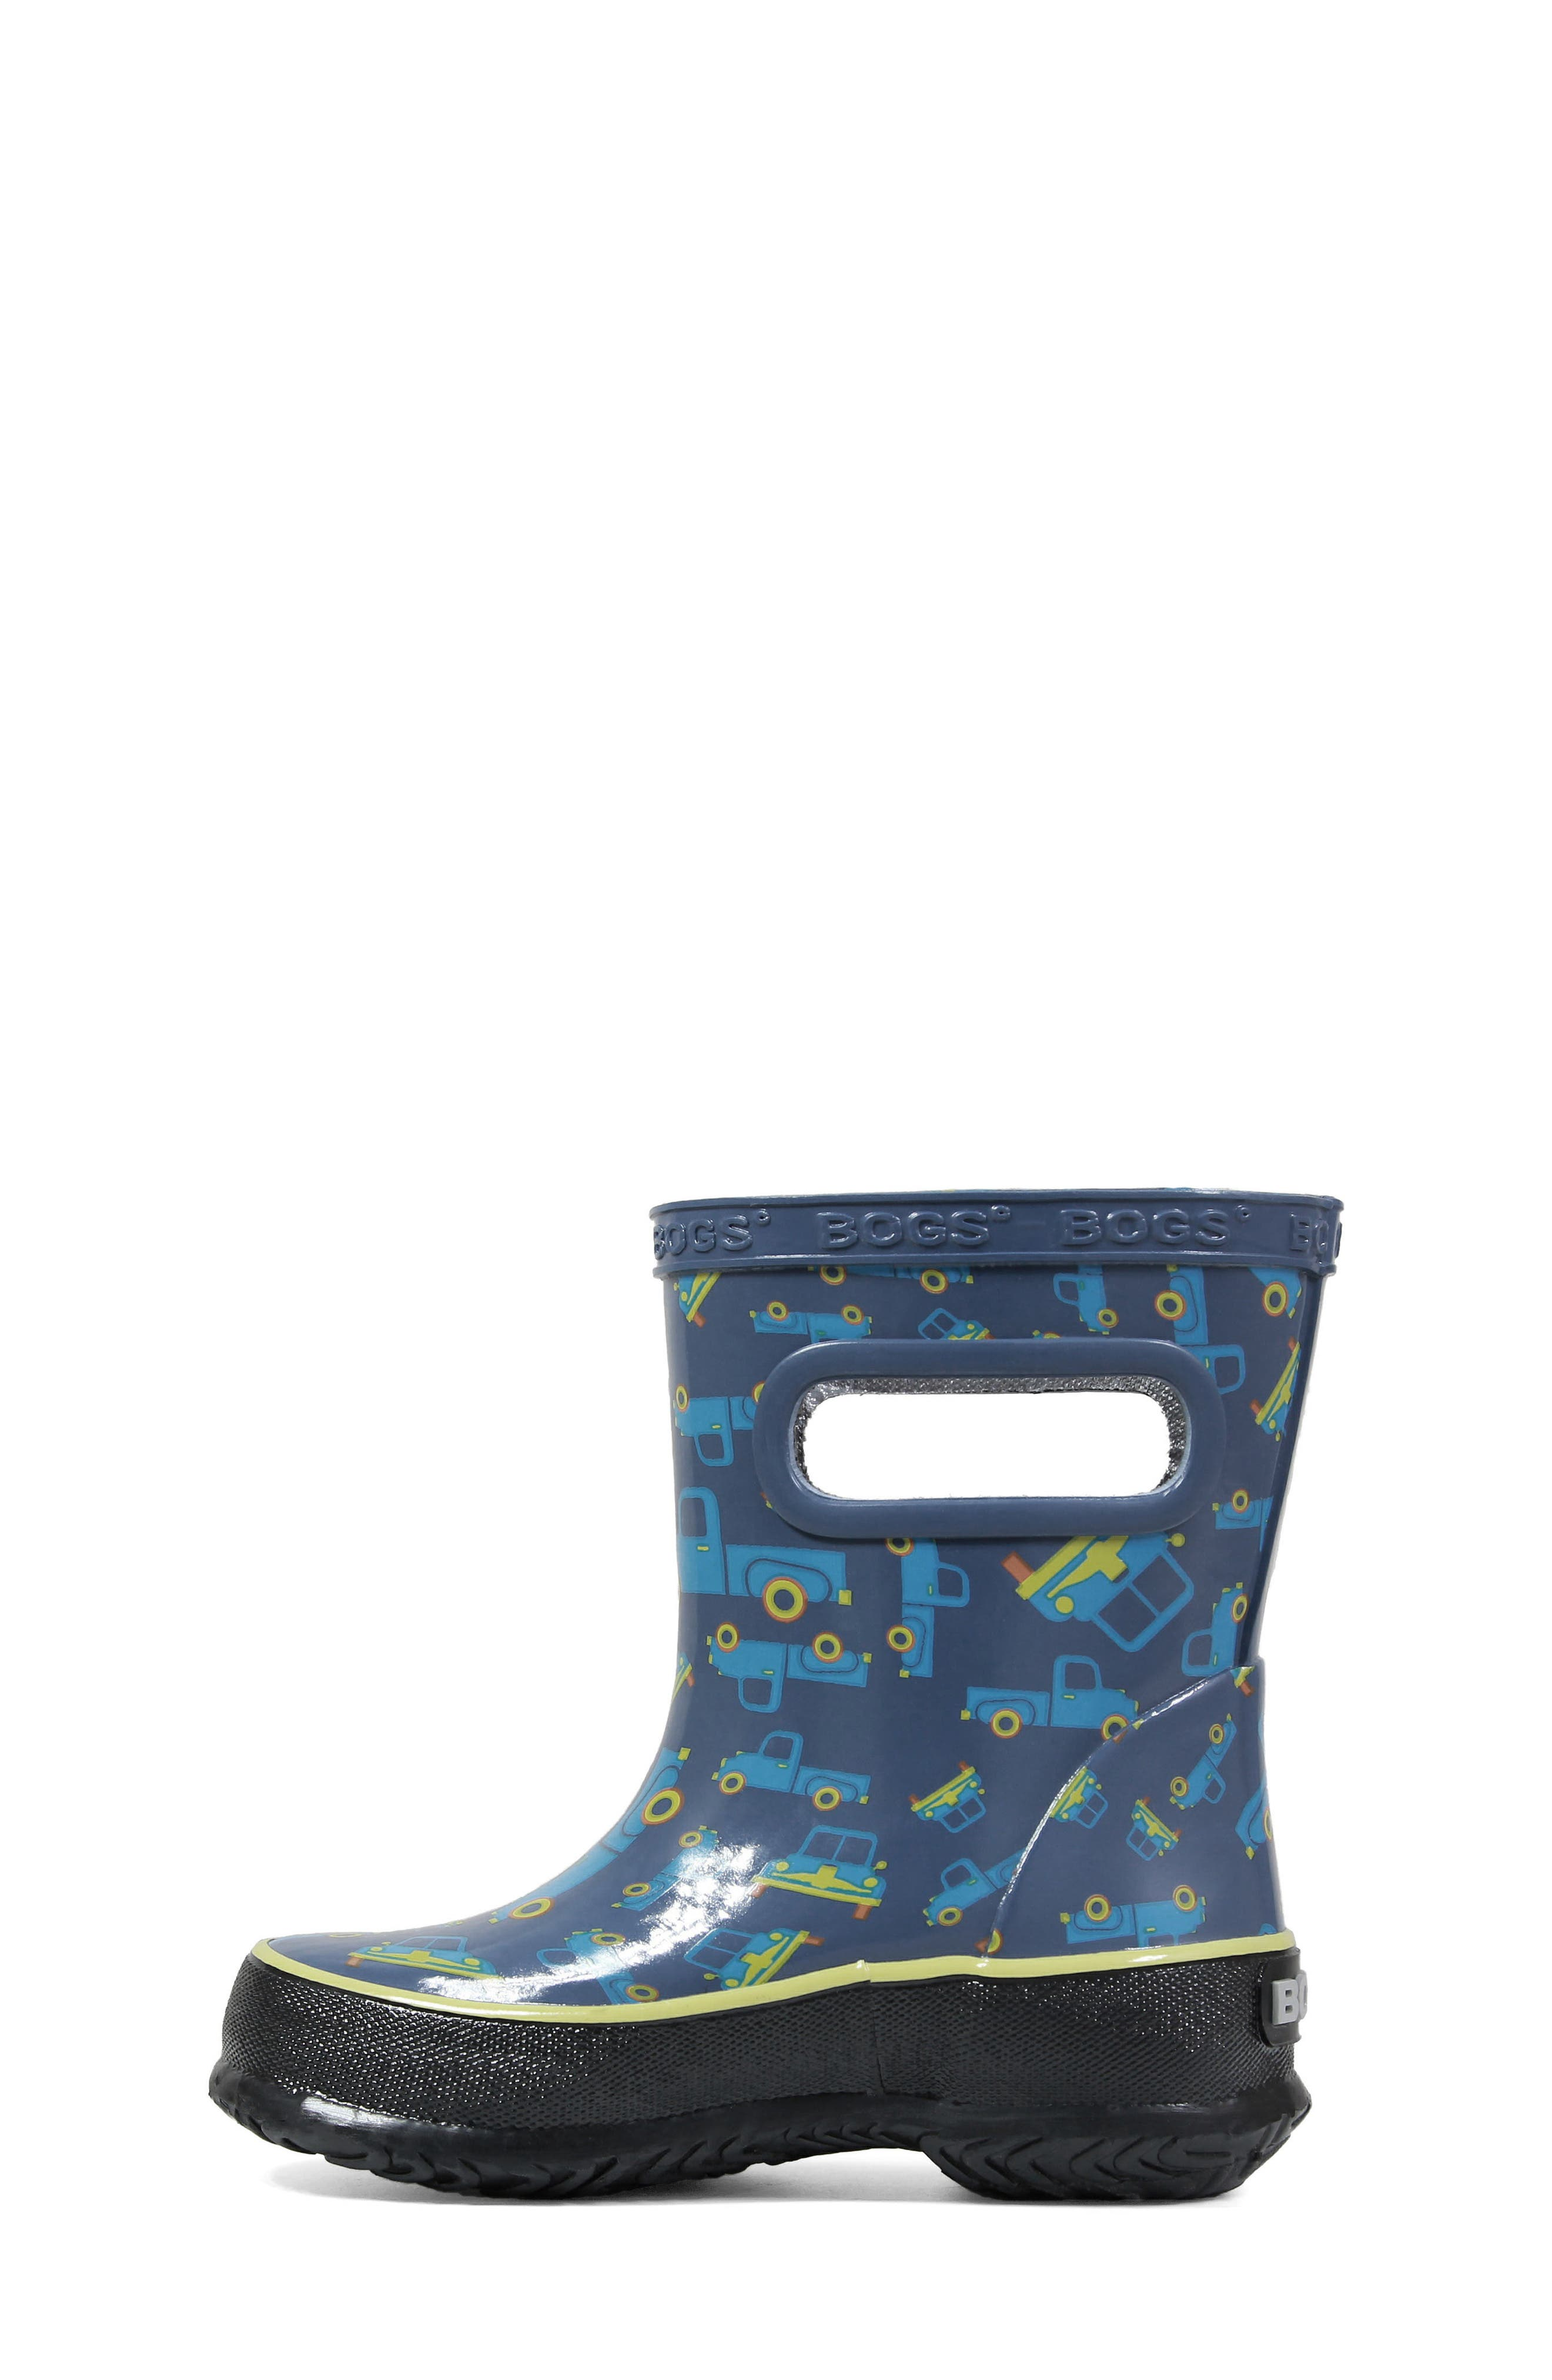 BOGS, Skipper Truck Print Rubber Rain Boot, Alternate thumbnail 3, color, 460